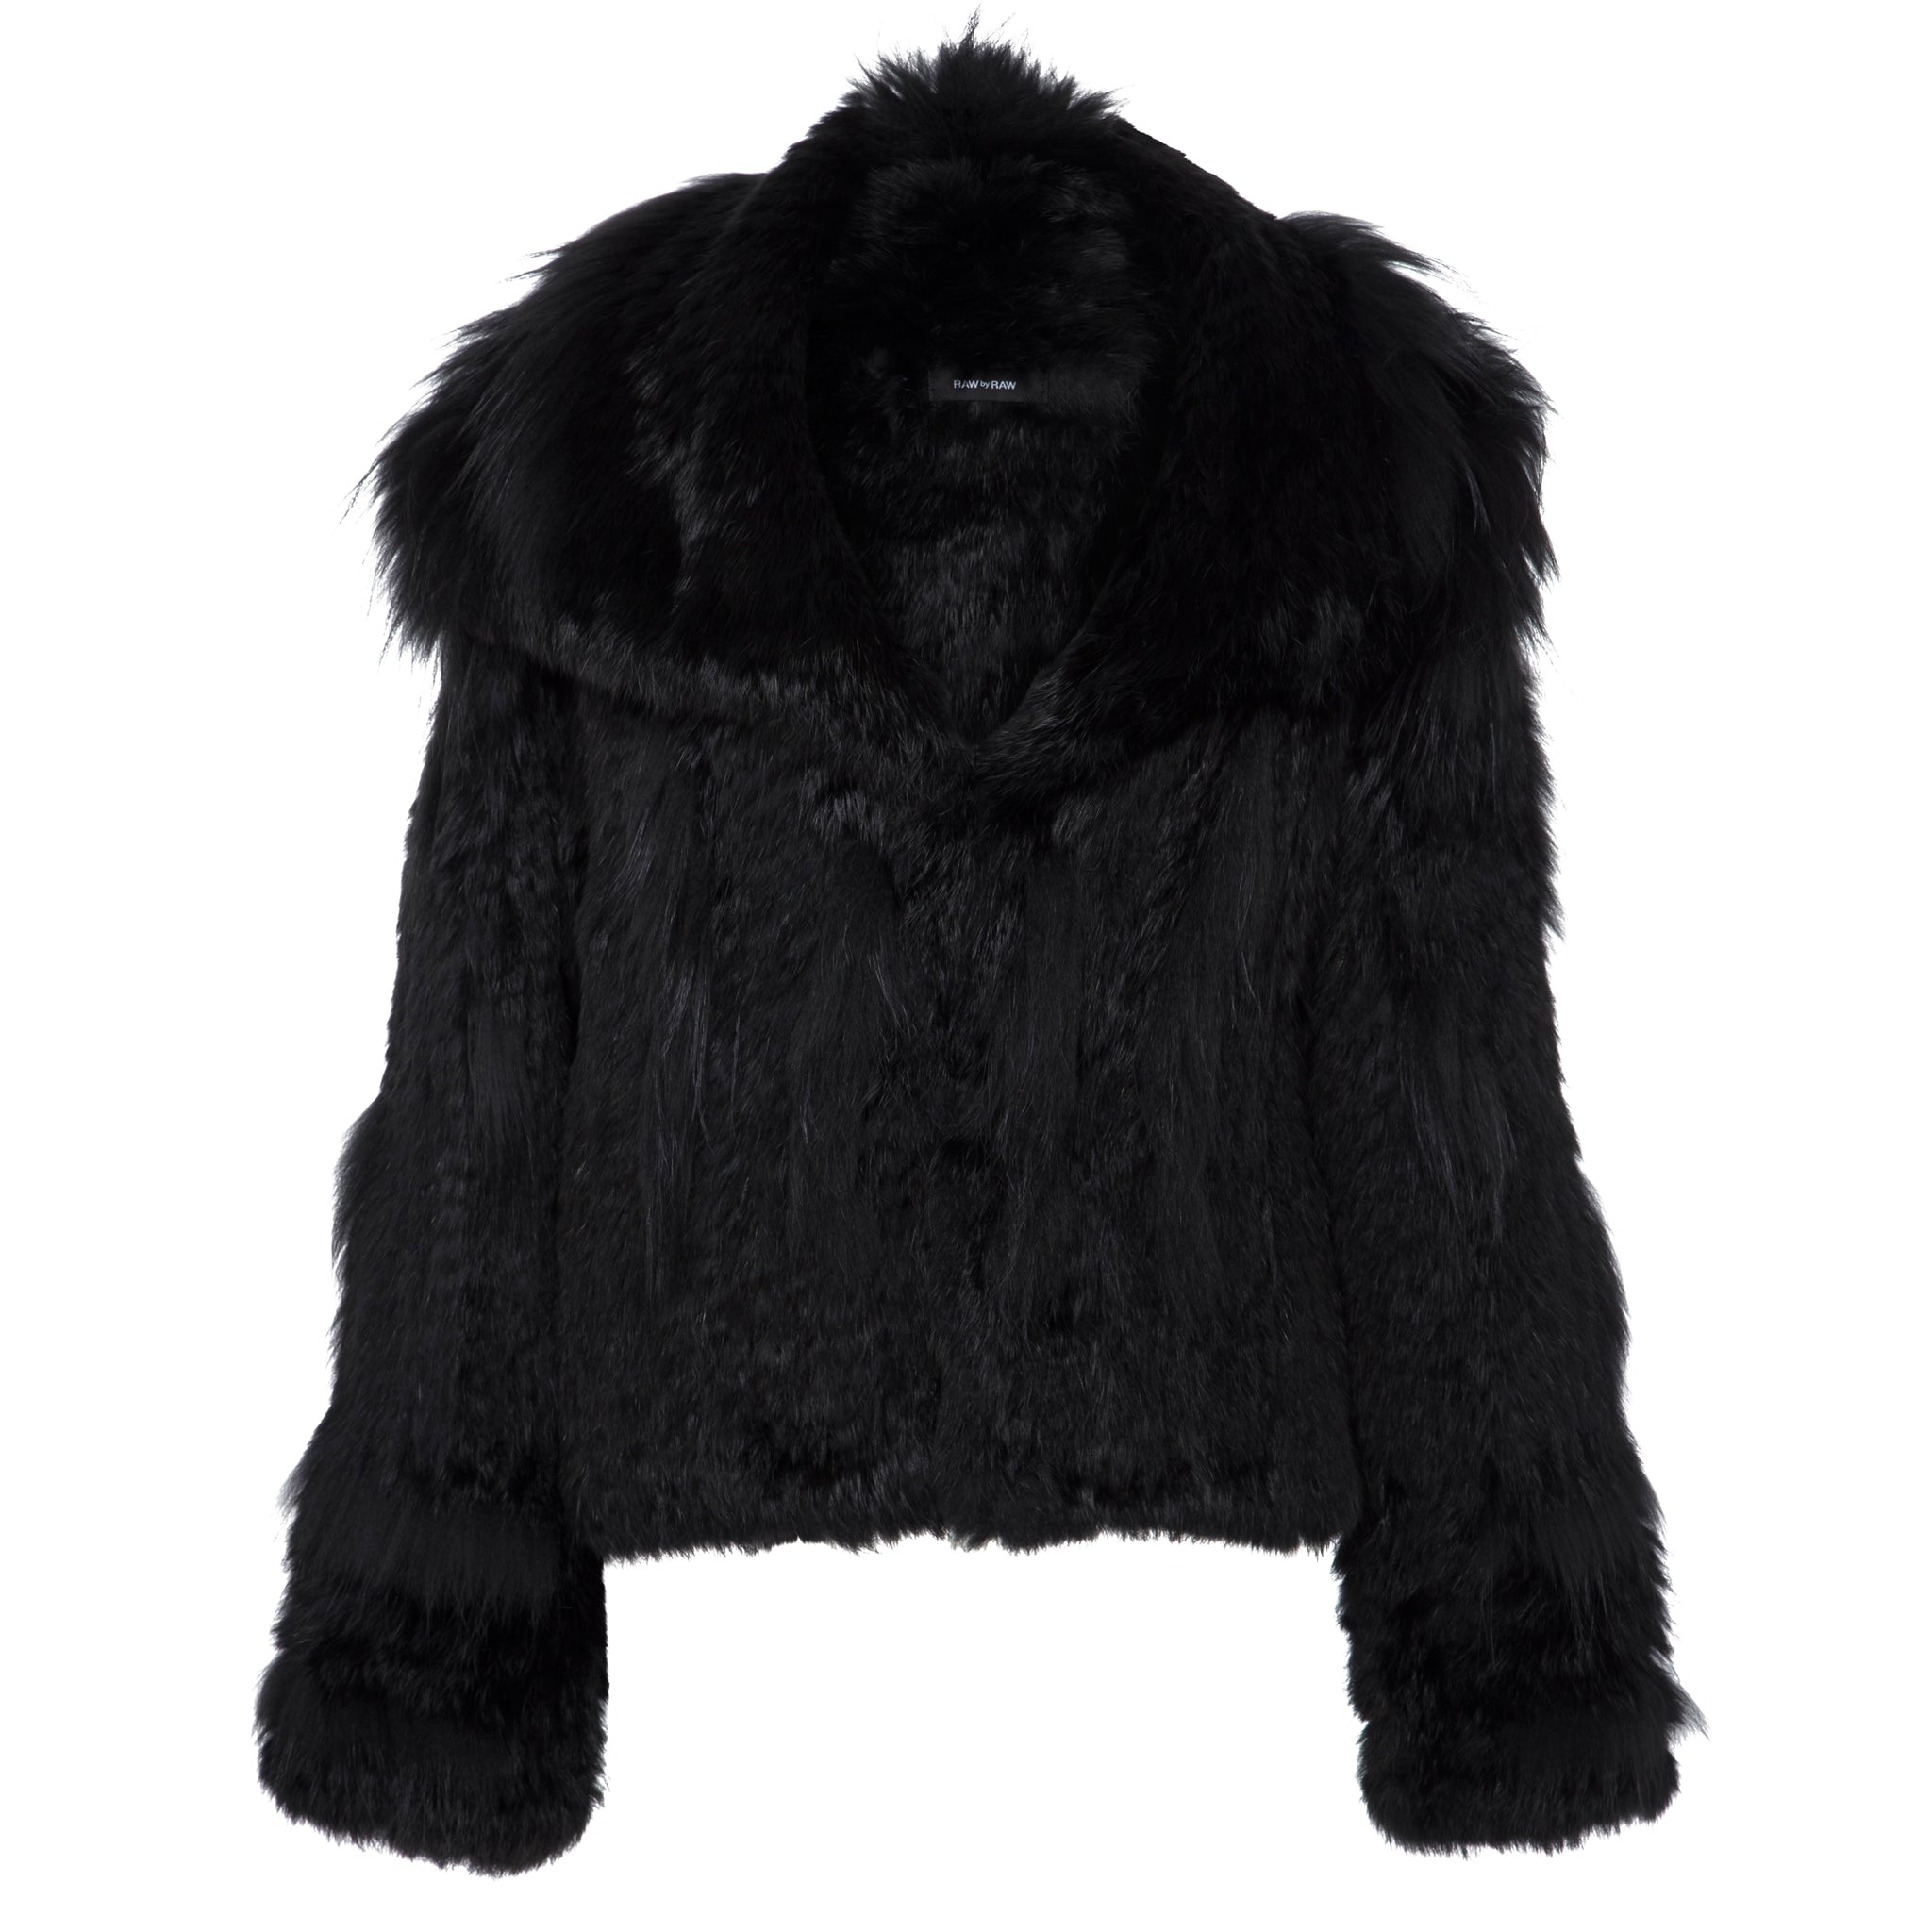 Vermont Fur Jacket - Jet Black